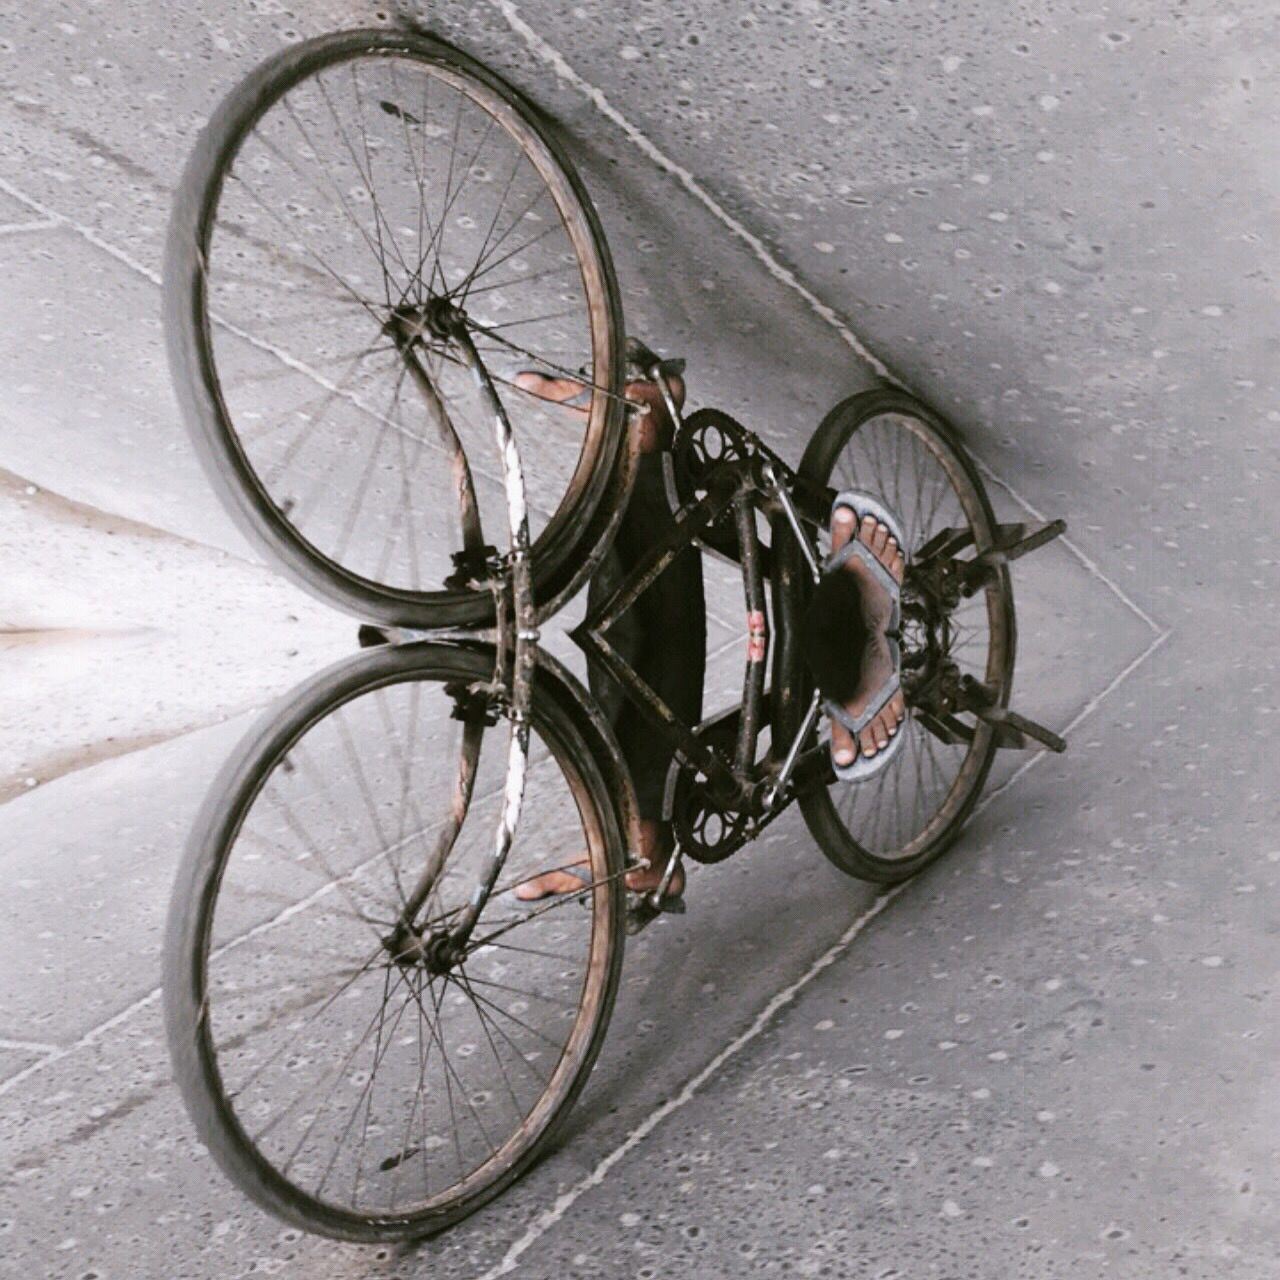 Personal Perspective Low Angle View Diminishing Perspective Low Section Mode Of Transport Close-up The Way Forward Bicycle Cycle Tyre Perspective Changes Everything Life